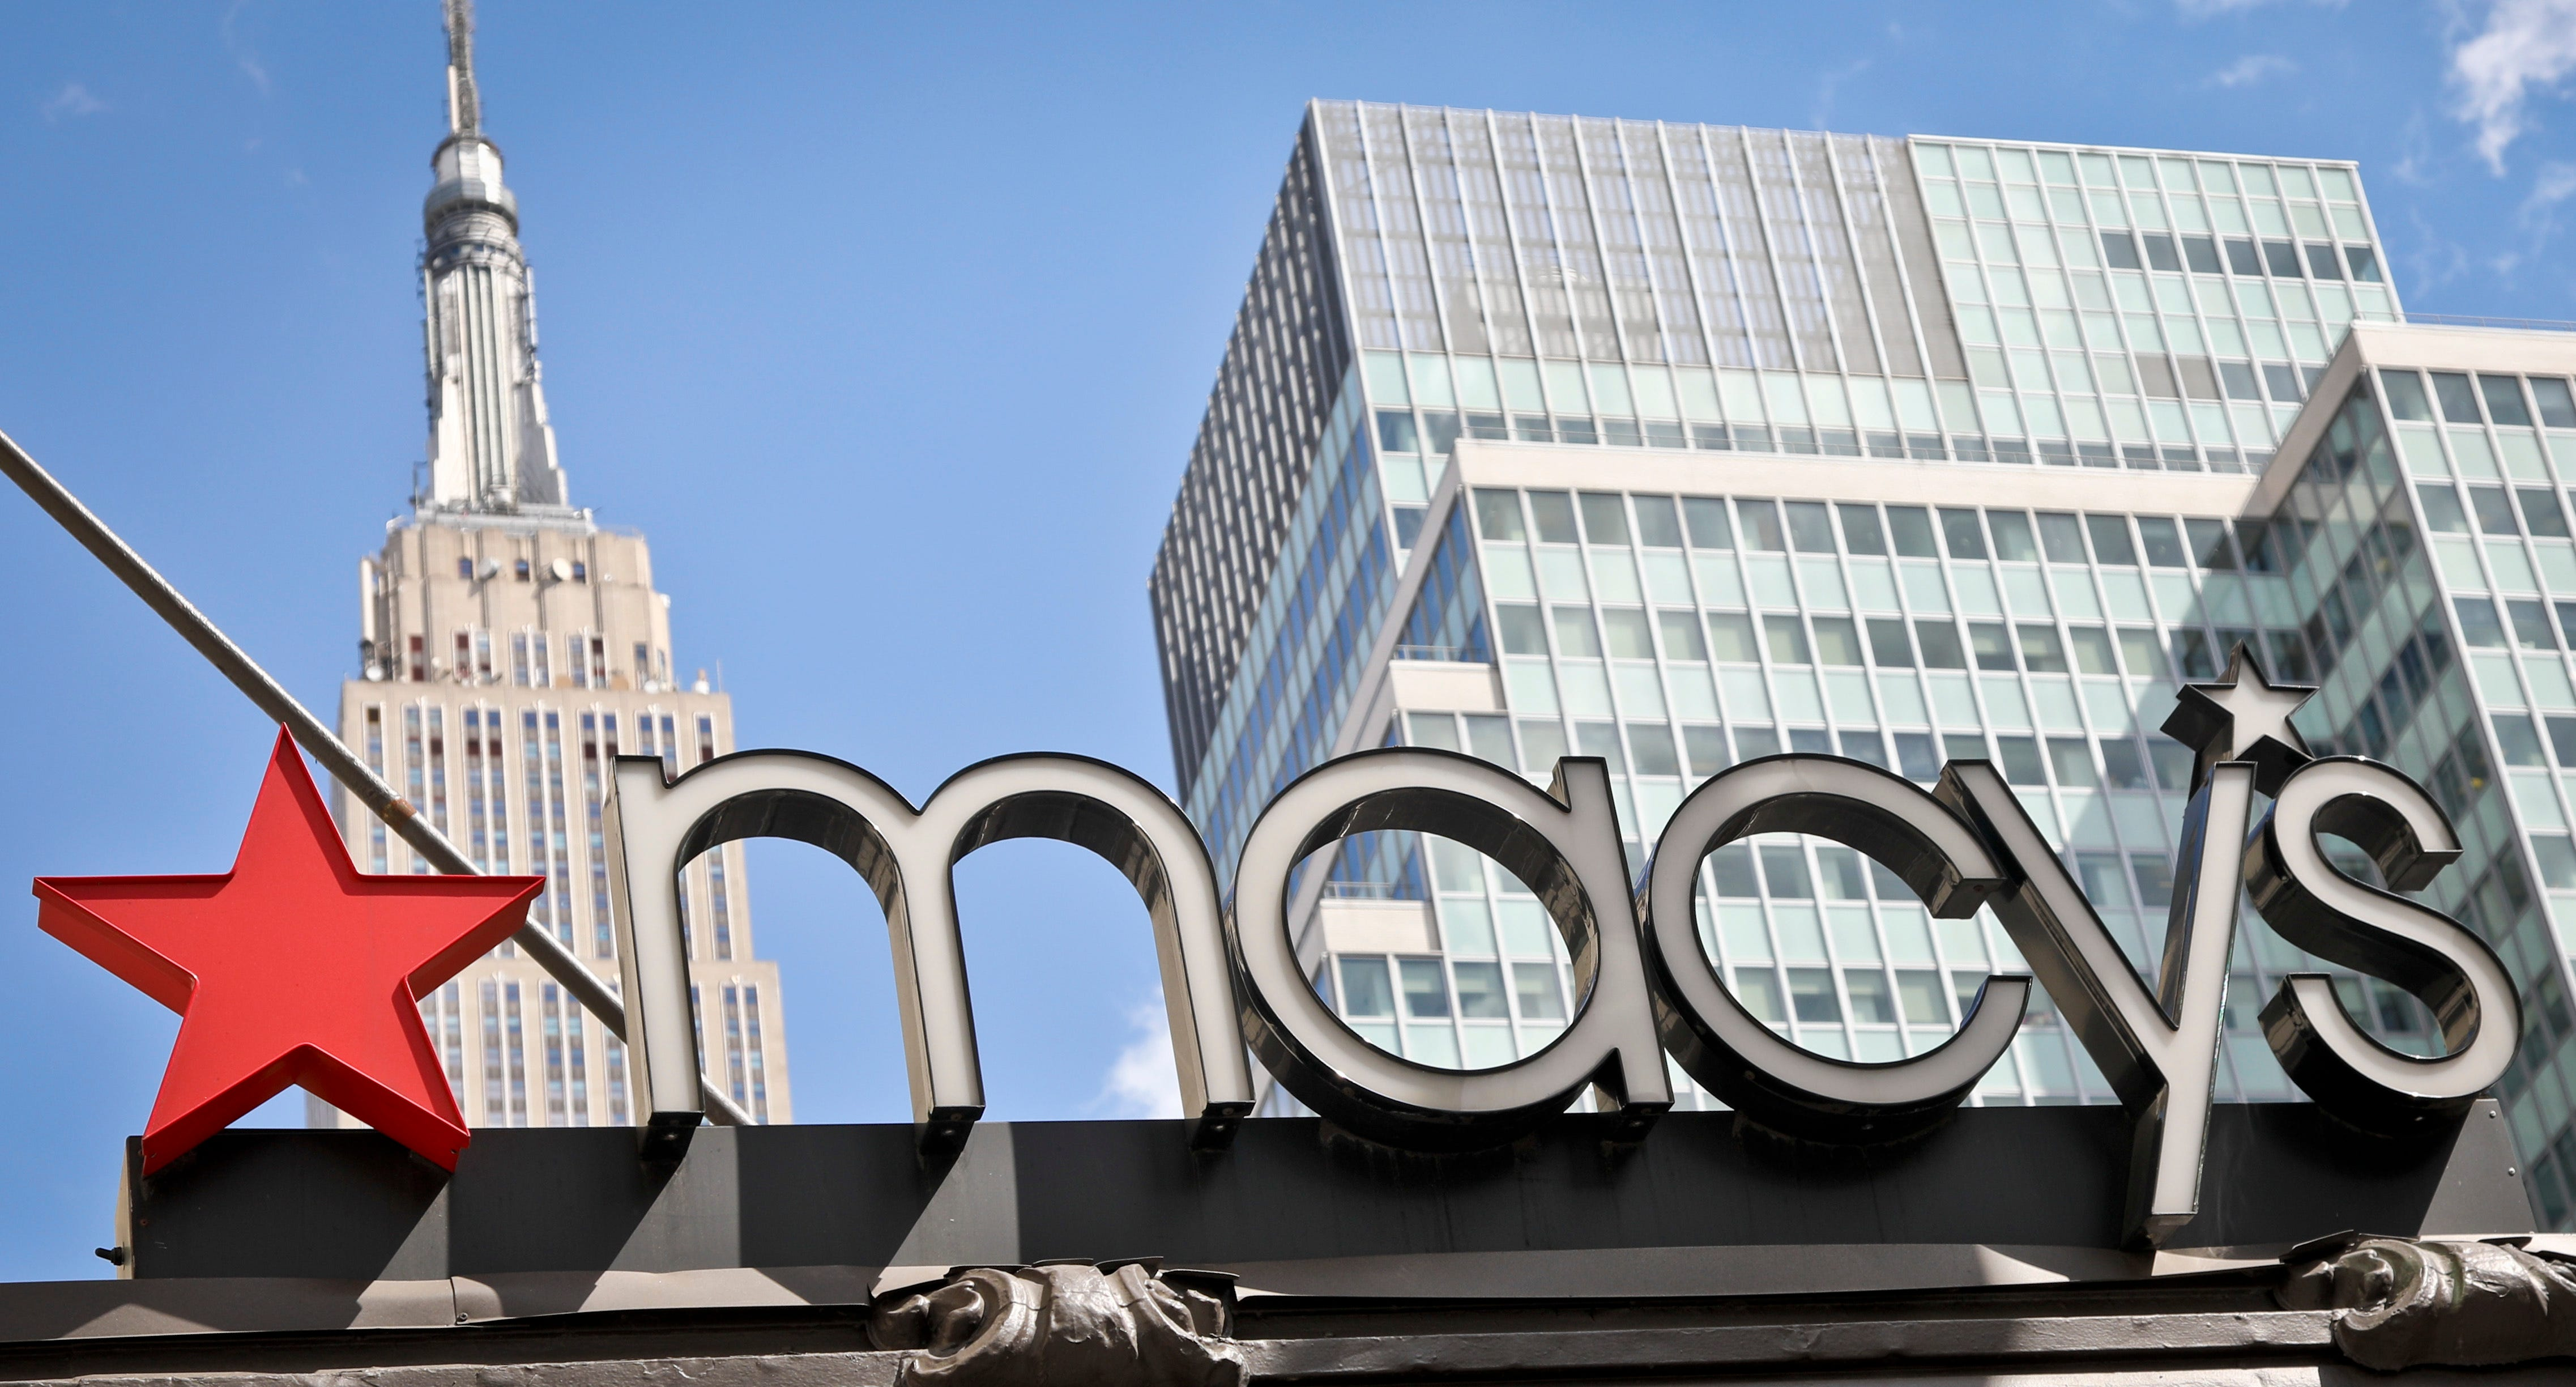 Macy's had already weathered a few rounds of levies. They say the department-store chain won't be so lucky with Trump's latest round of tariffs.